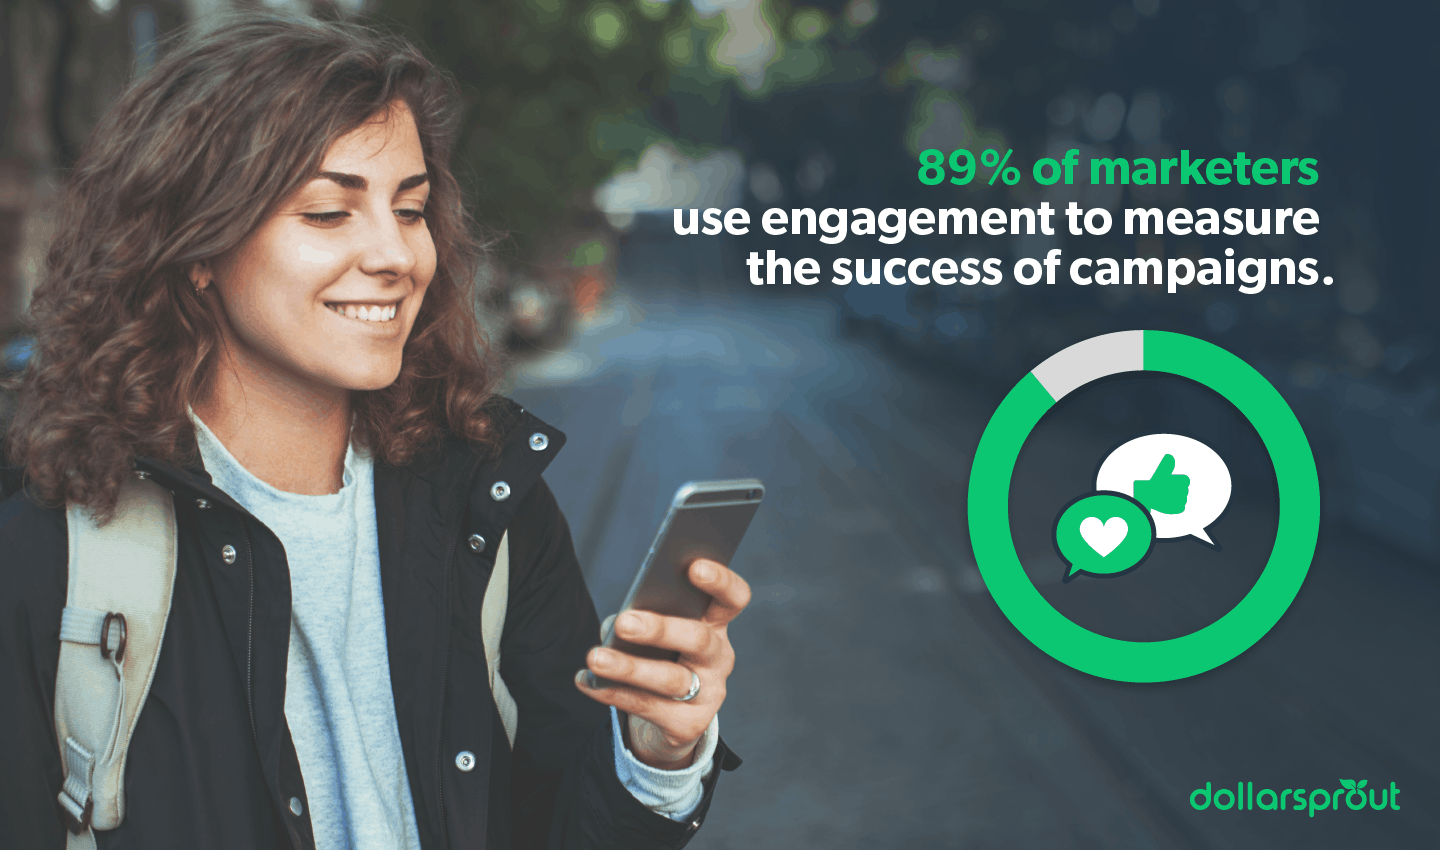 The use of engagement to measure the success of campaigns